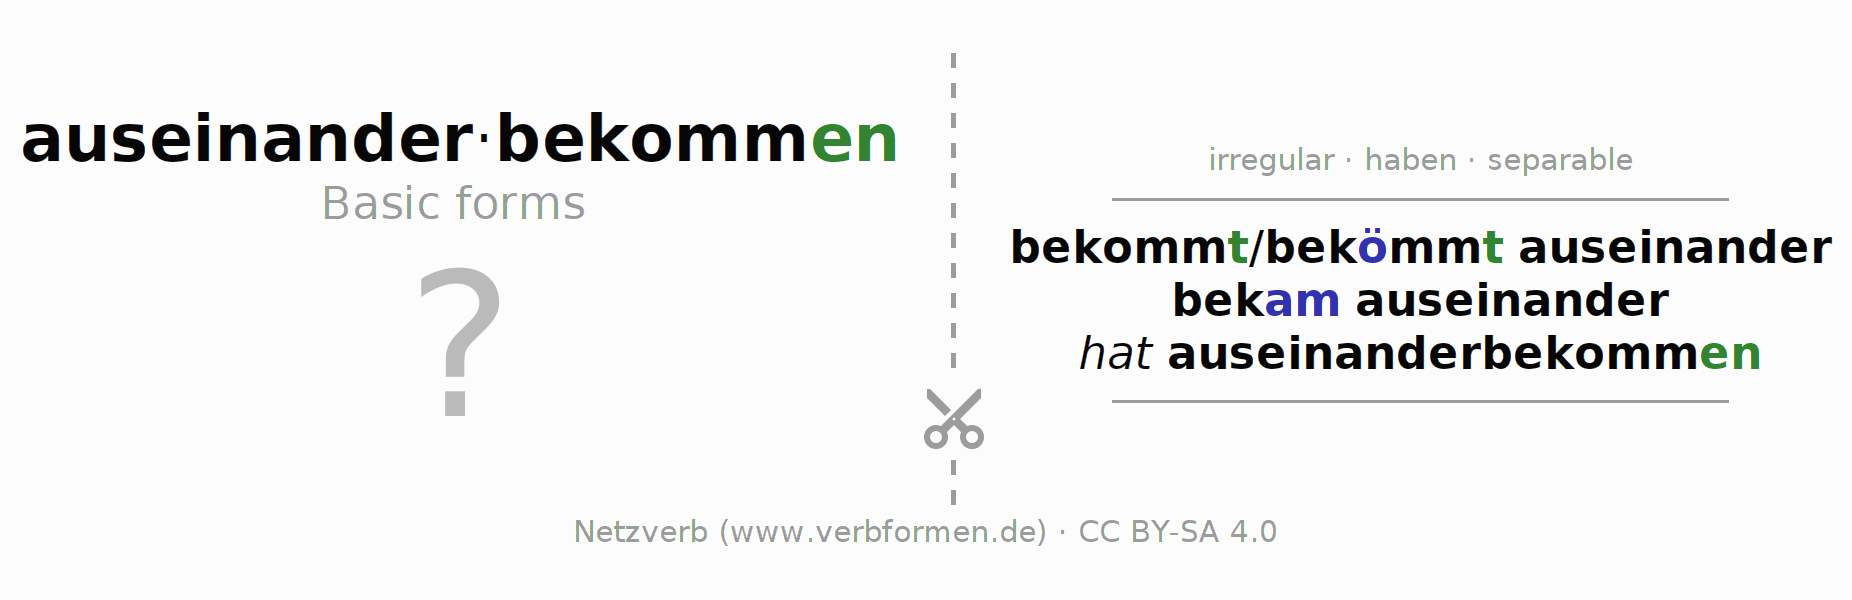 Flash cards for the conjugation of the verb auseinanderbekommen